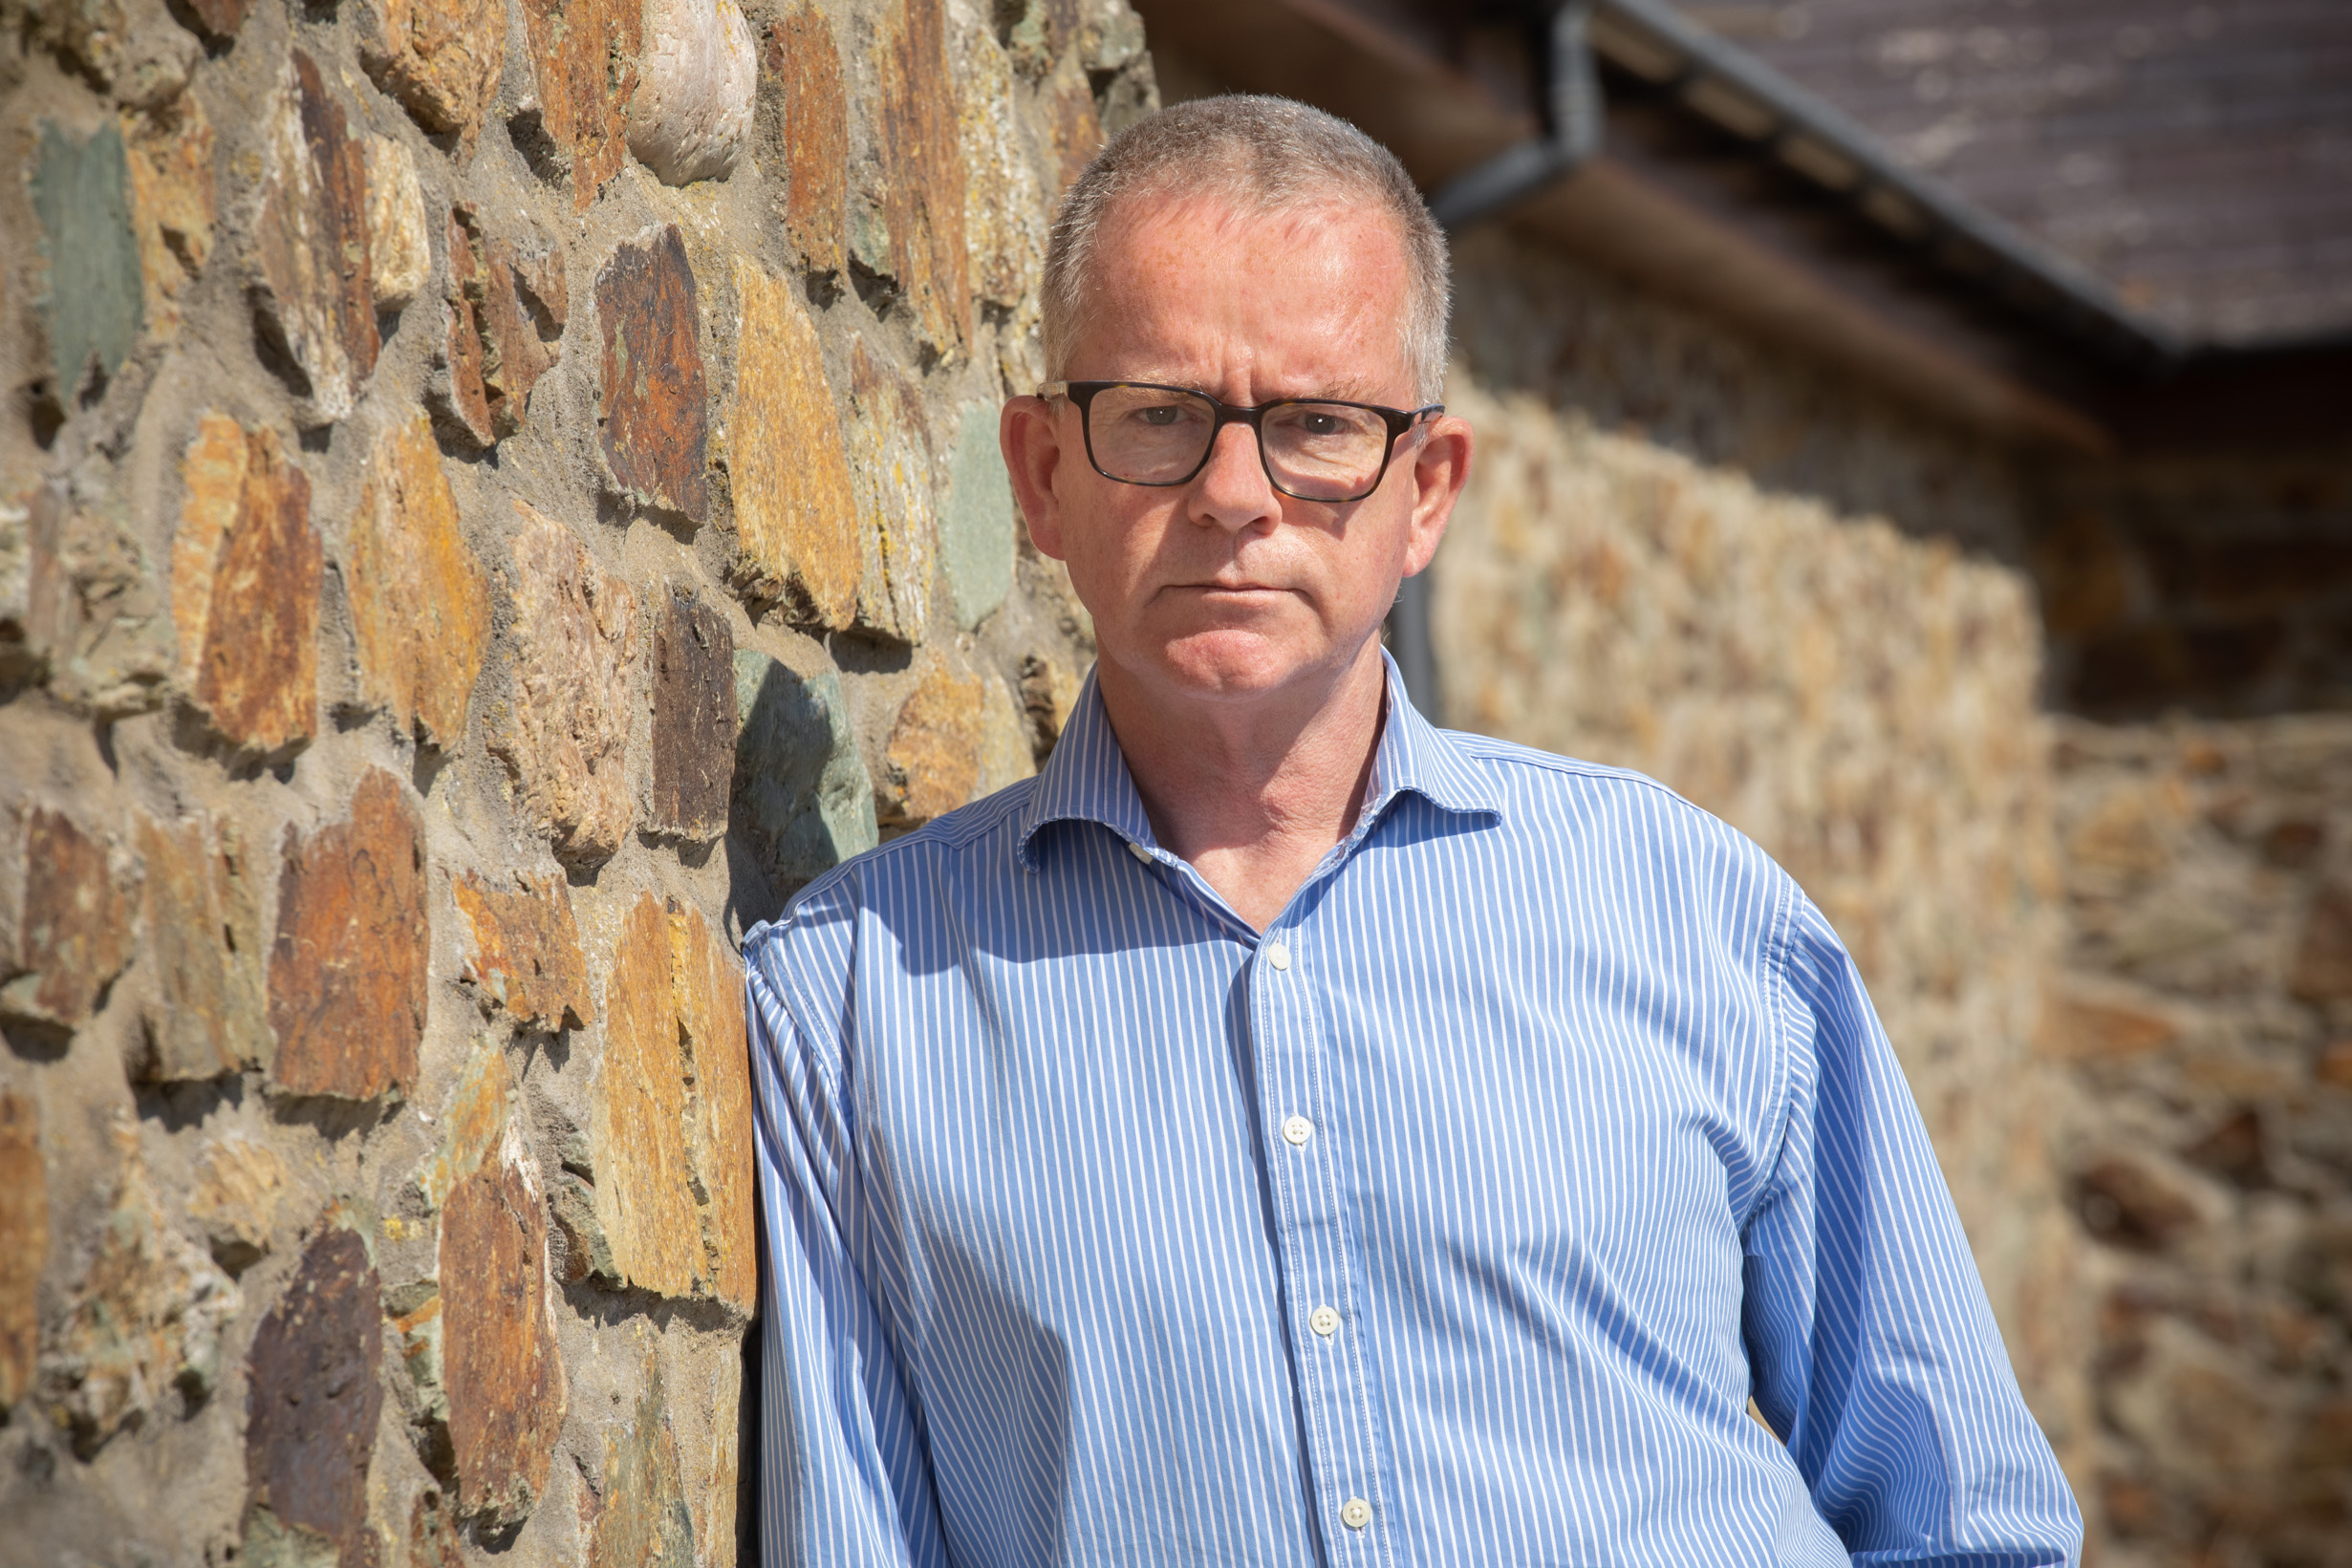 Care home boss describes huge emotional and financial cost of Covid-19 crisis